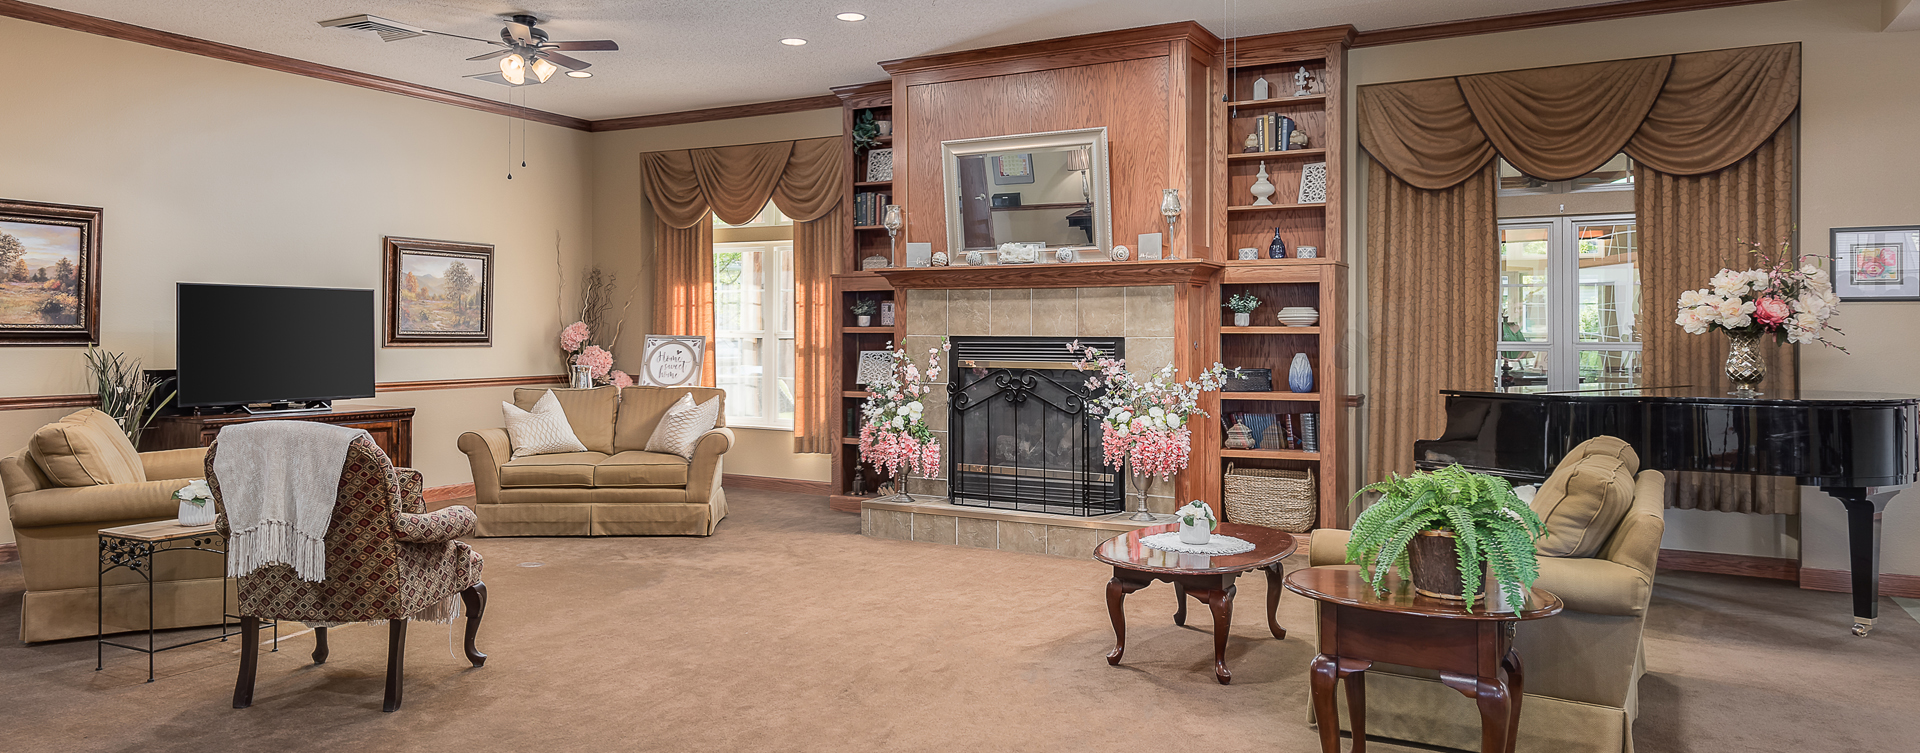 Enjoy a good book in the living room at Bickford of Midland